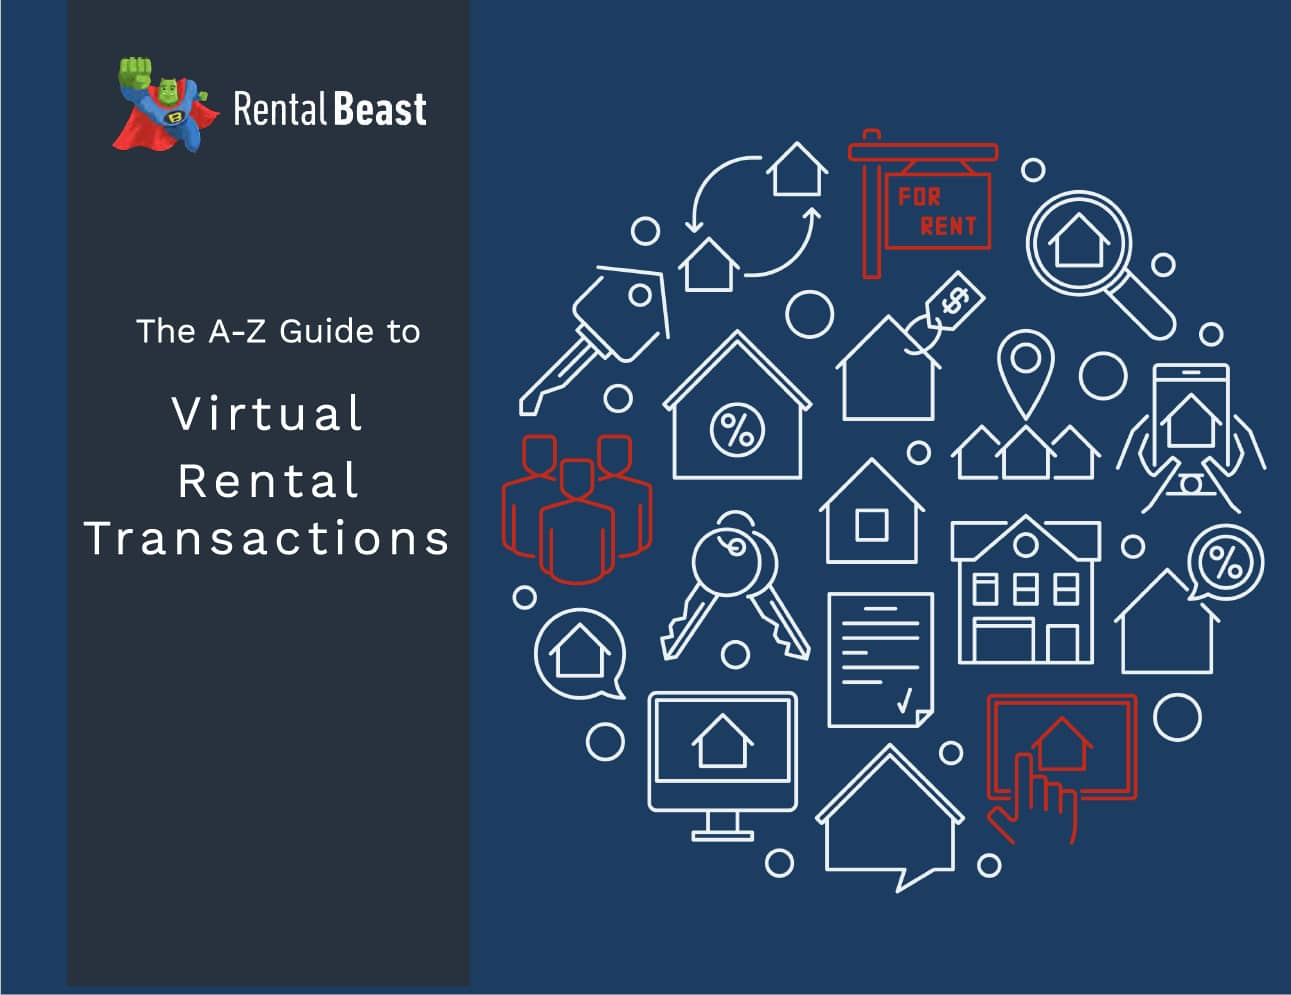 A-Z Guide for Virtual Rental Transactions